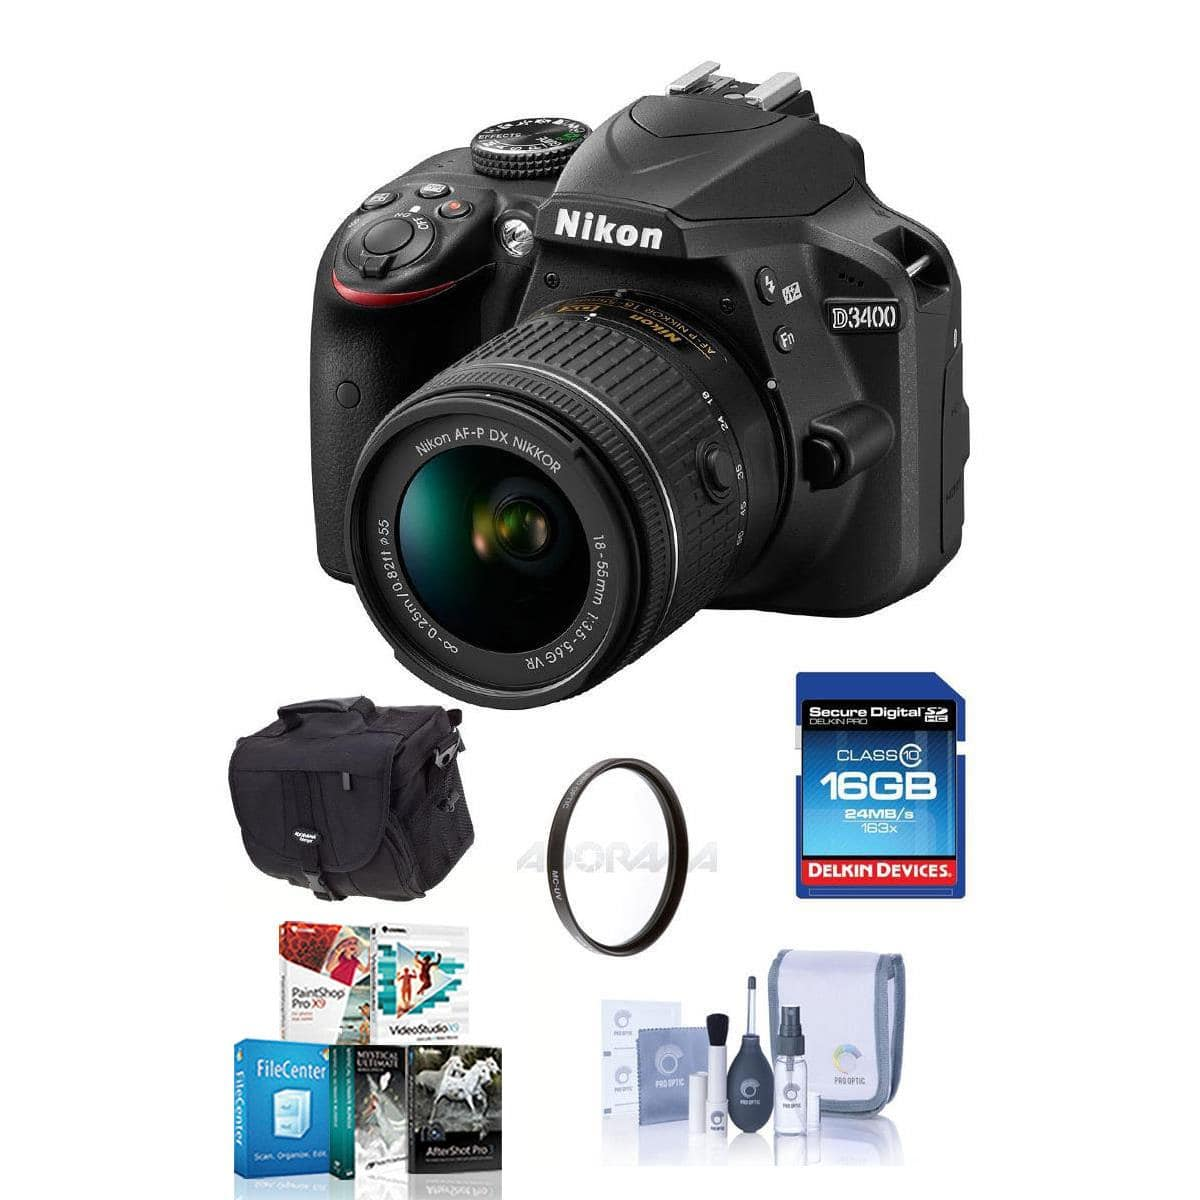 Nikon D3400 DSLR Body - NEW $397, Nikon D3400 DSLR with 35/1.8, 18-55mm 70-300mm ED Lenses, Red  $697, D7200 Body $797 and ships free